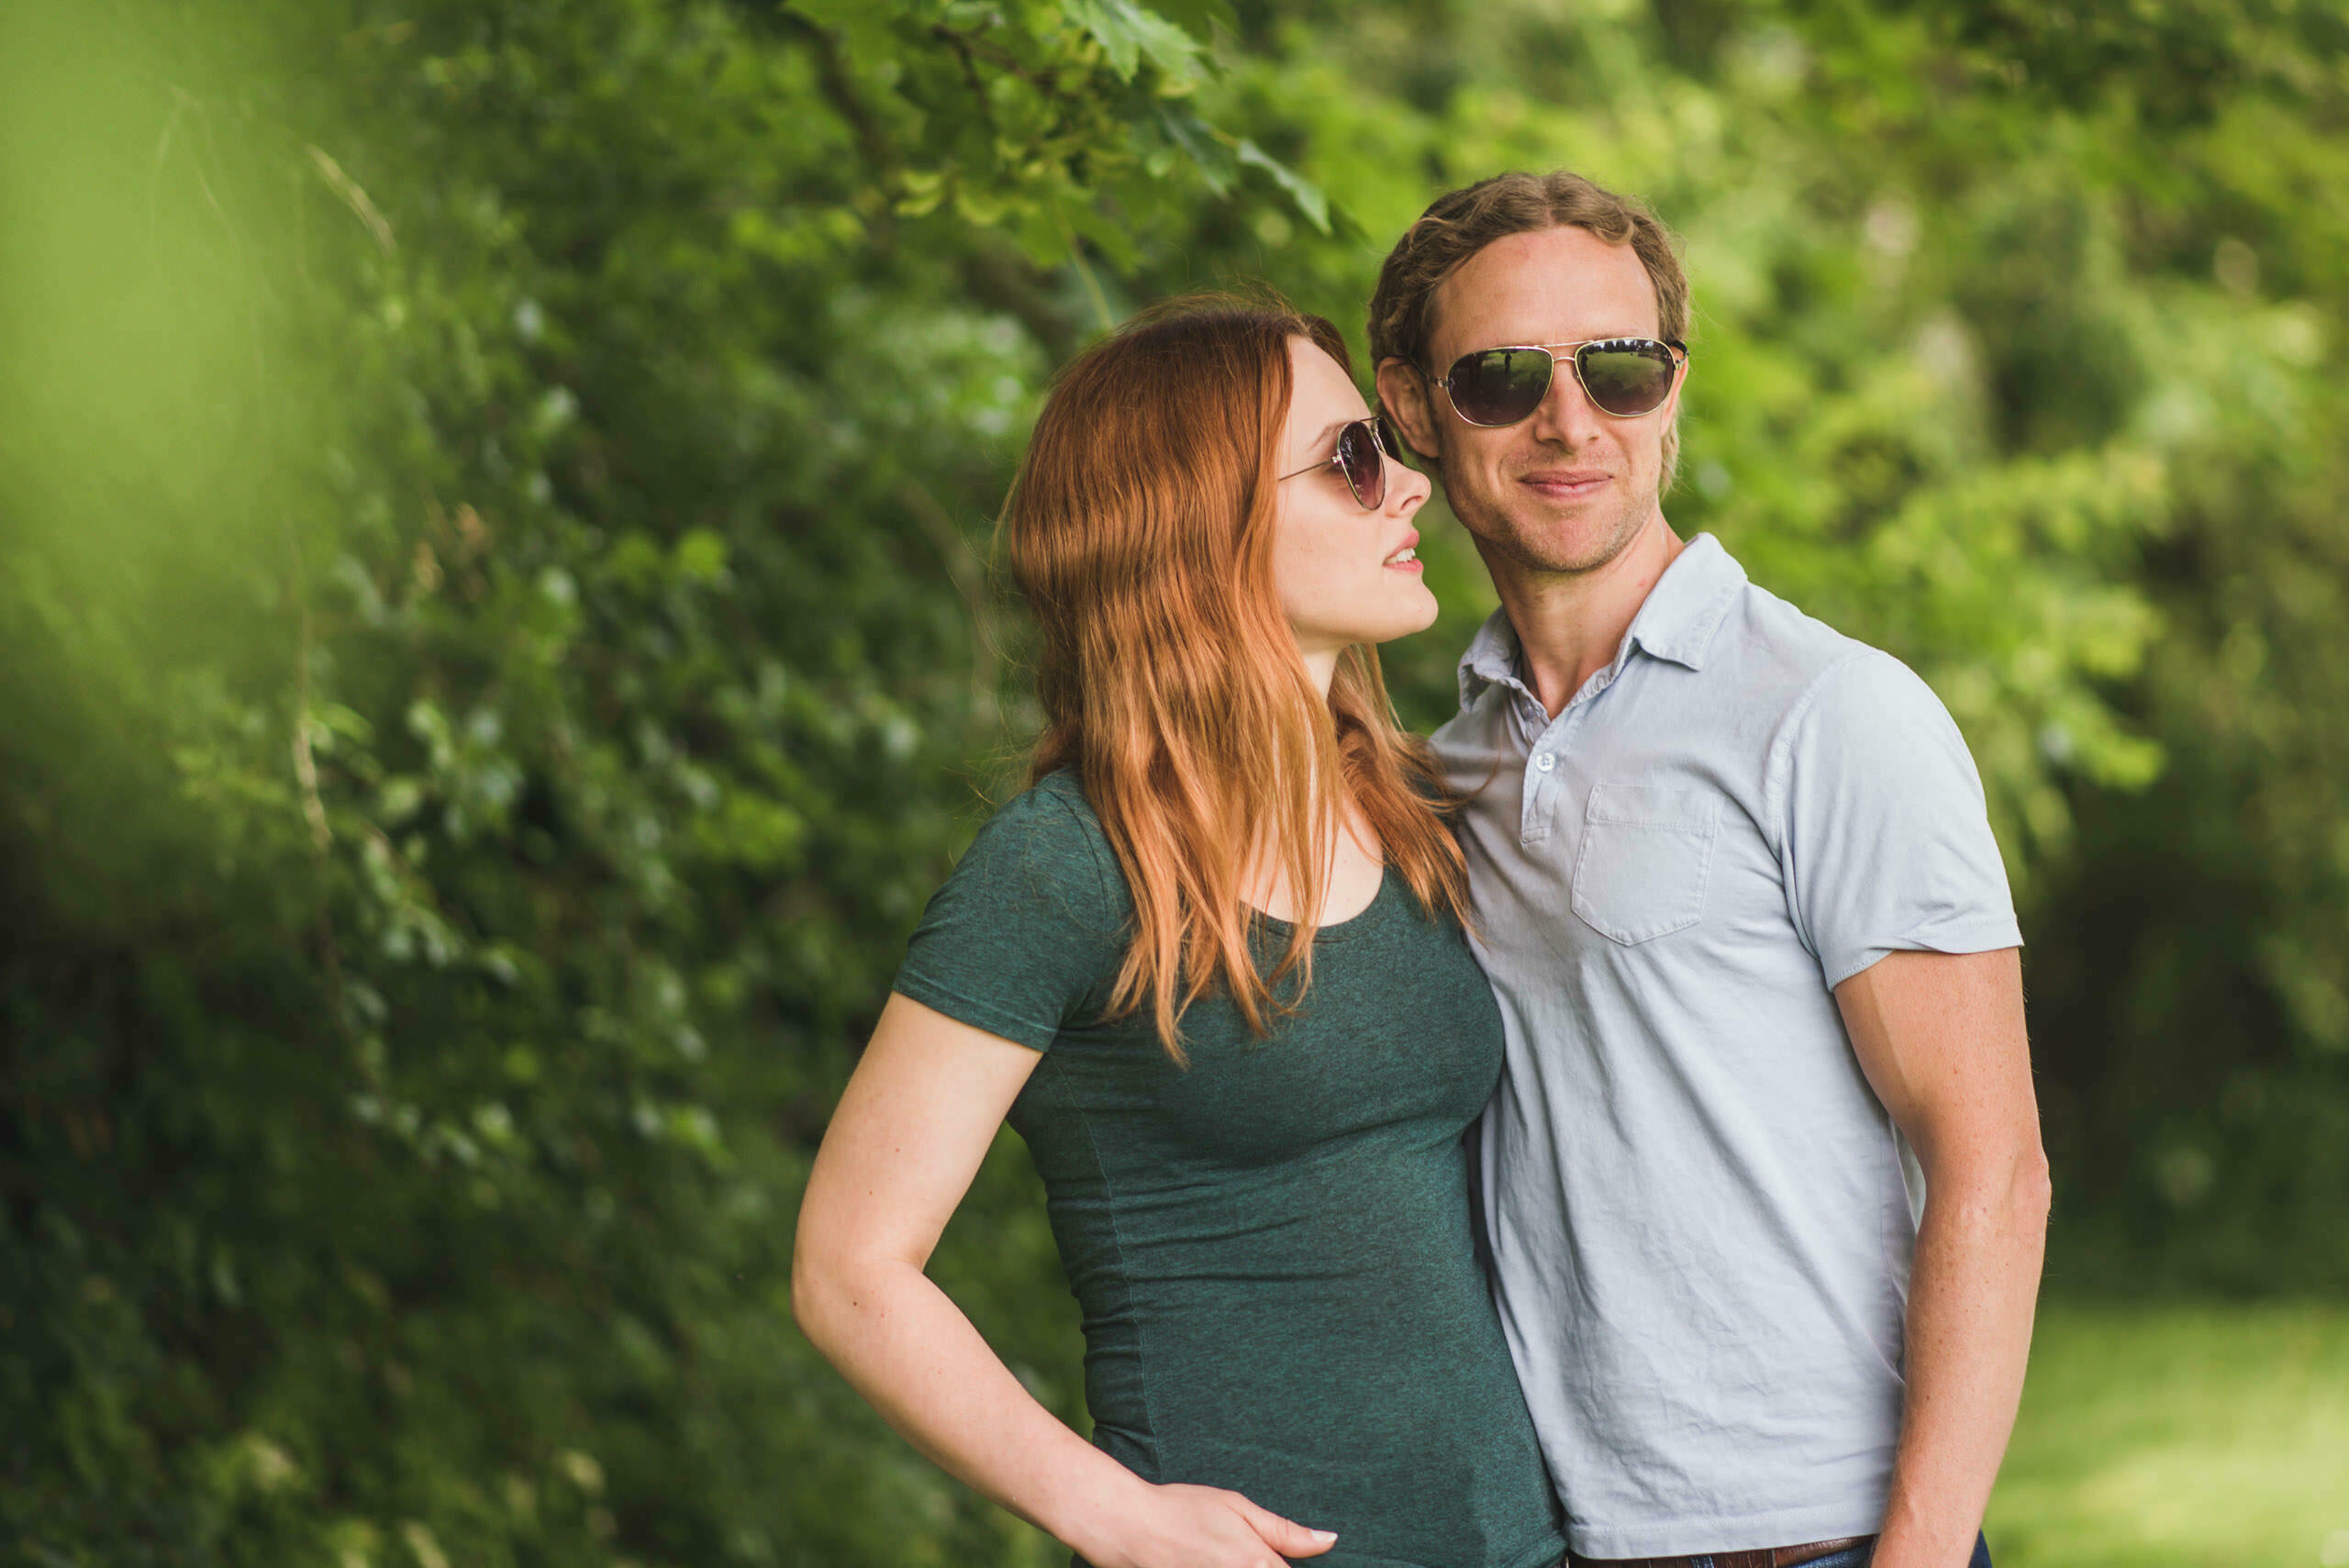 Engagement session at Lemore Manor